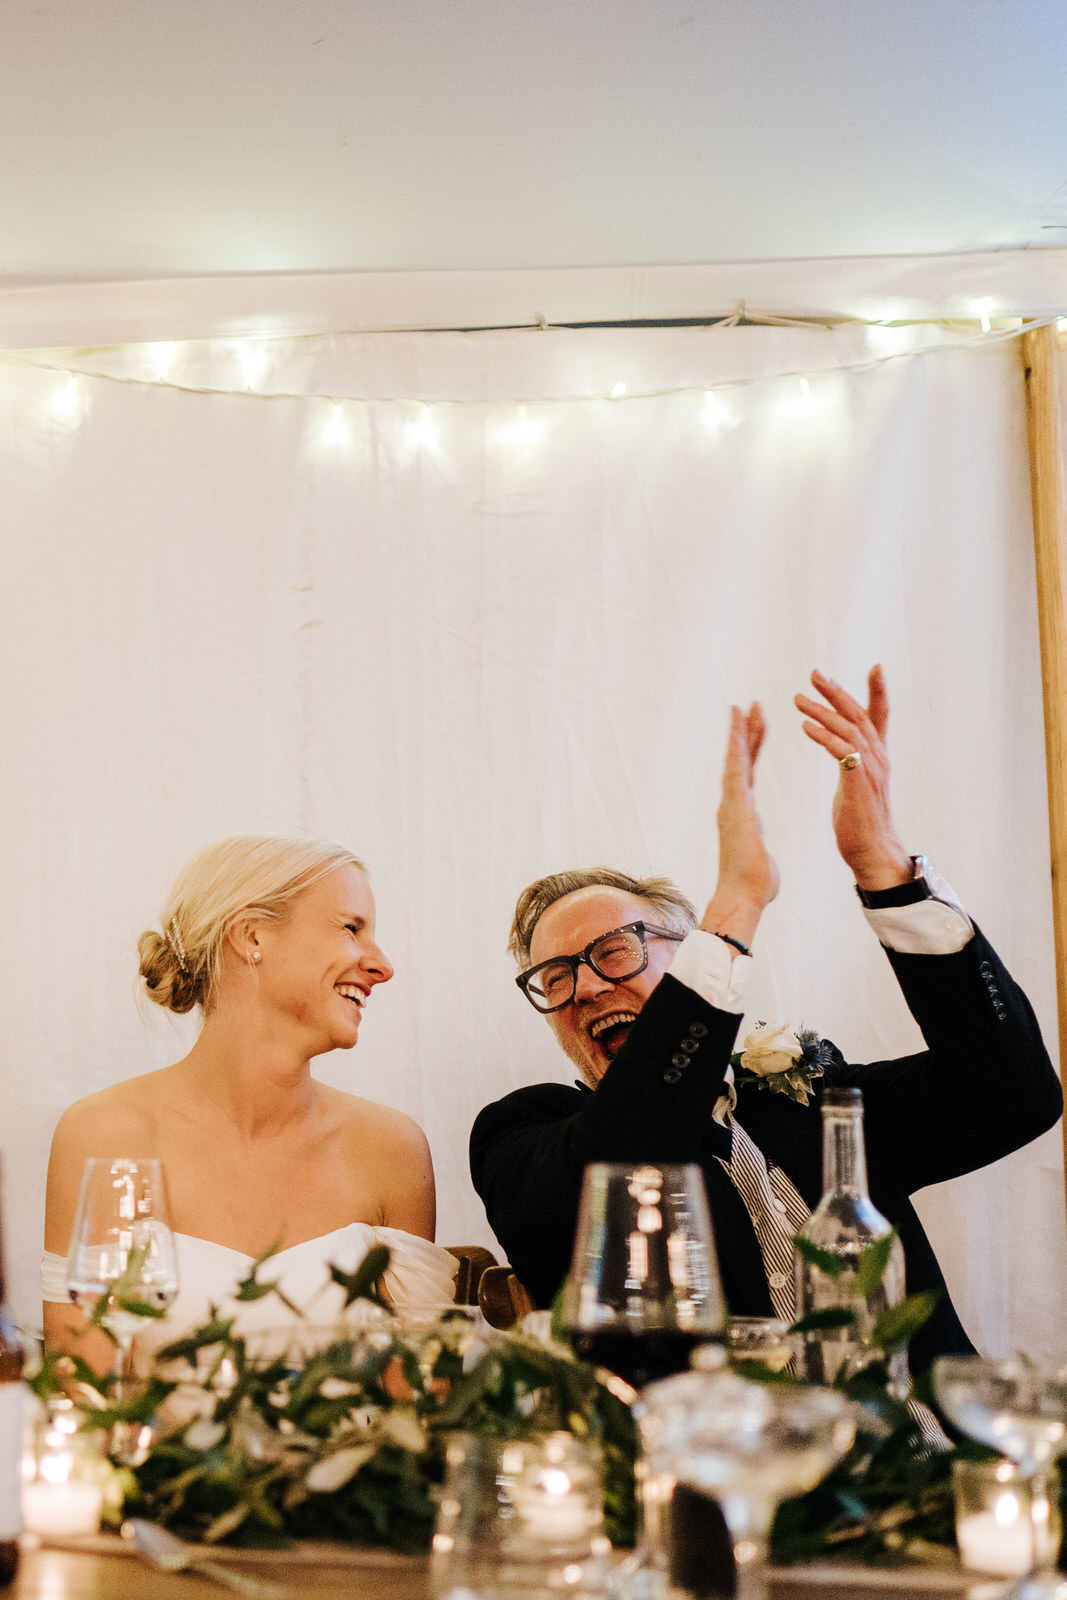 Father of the bride throws his hands into the air and claps while looking at bride, sitting right next to him and smiling